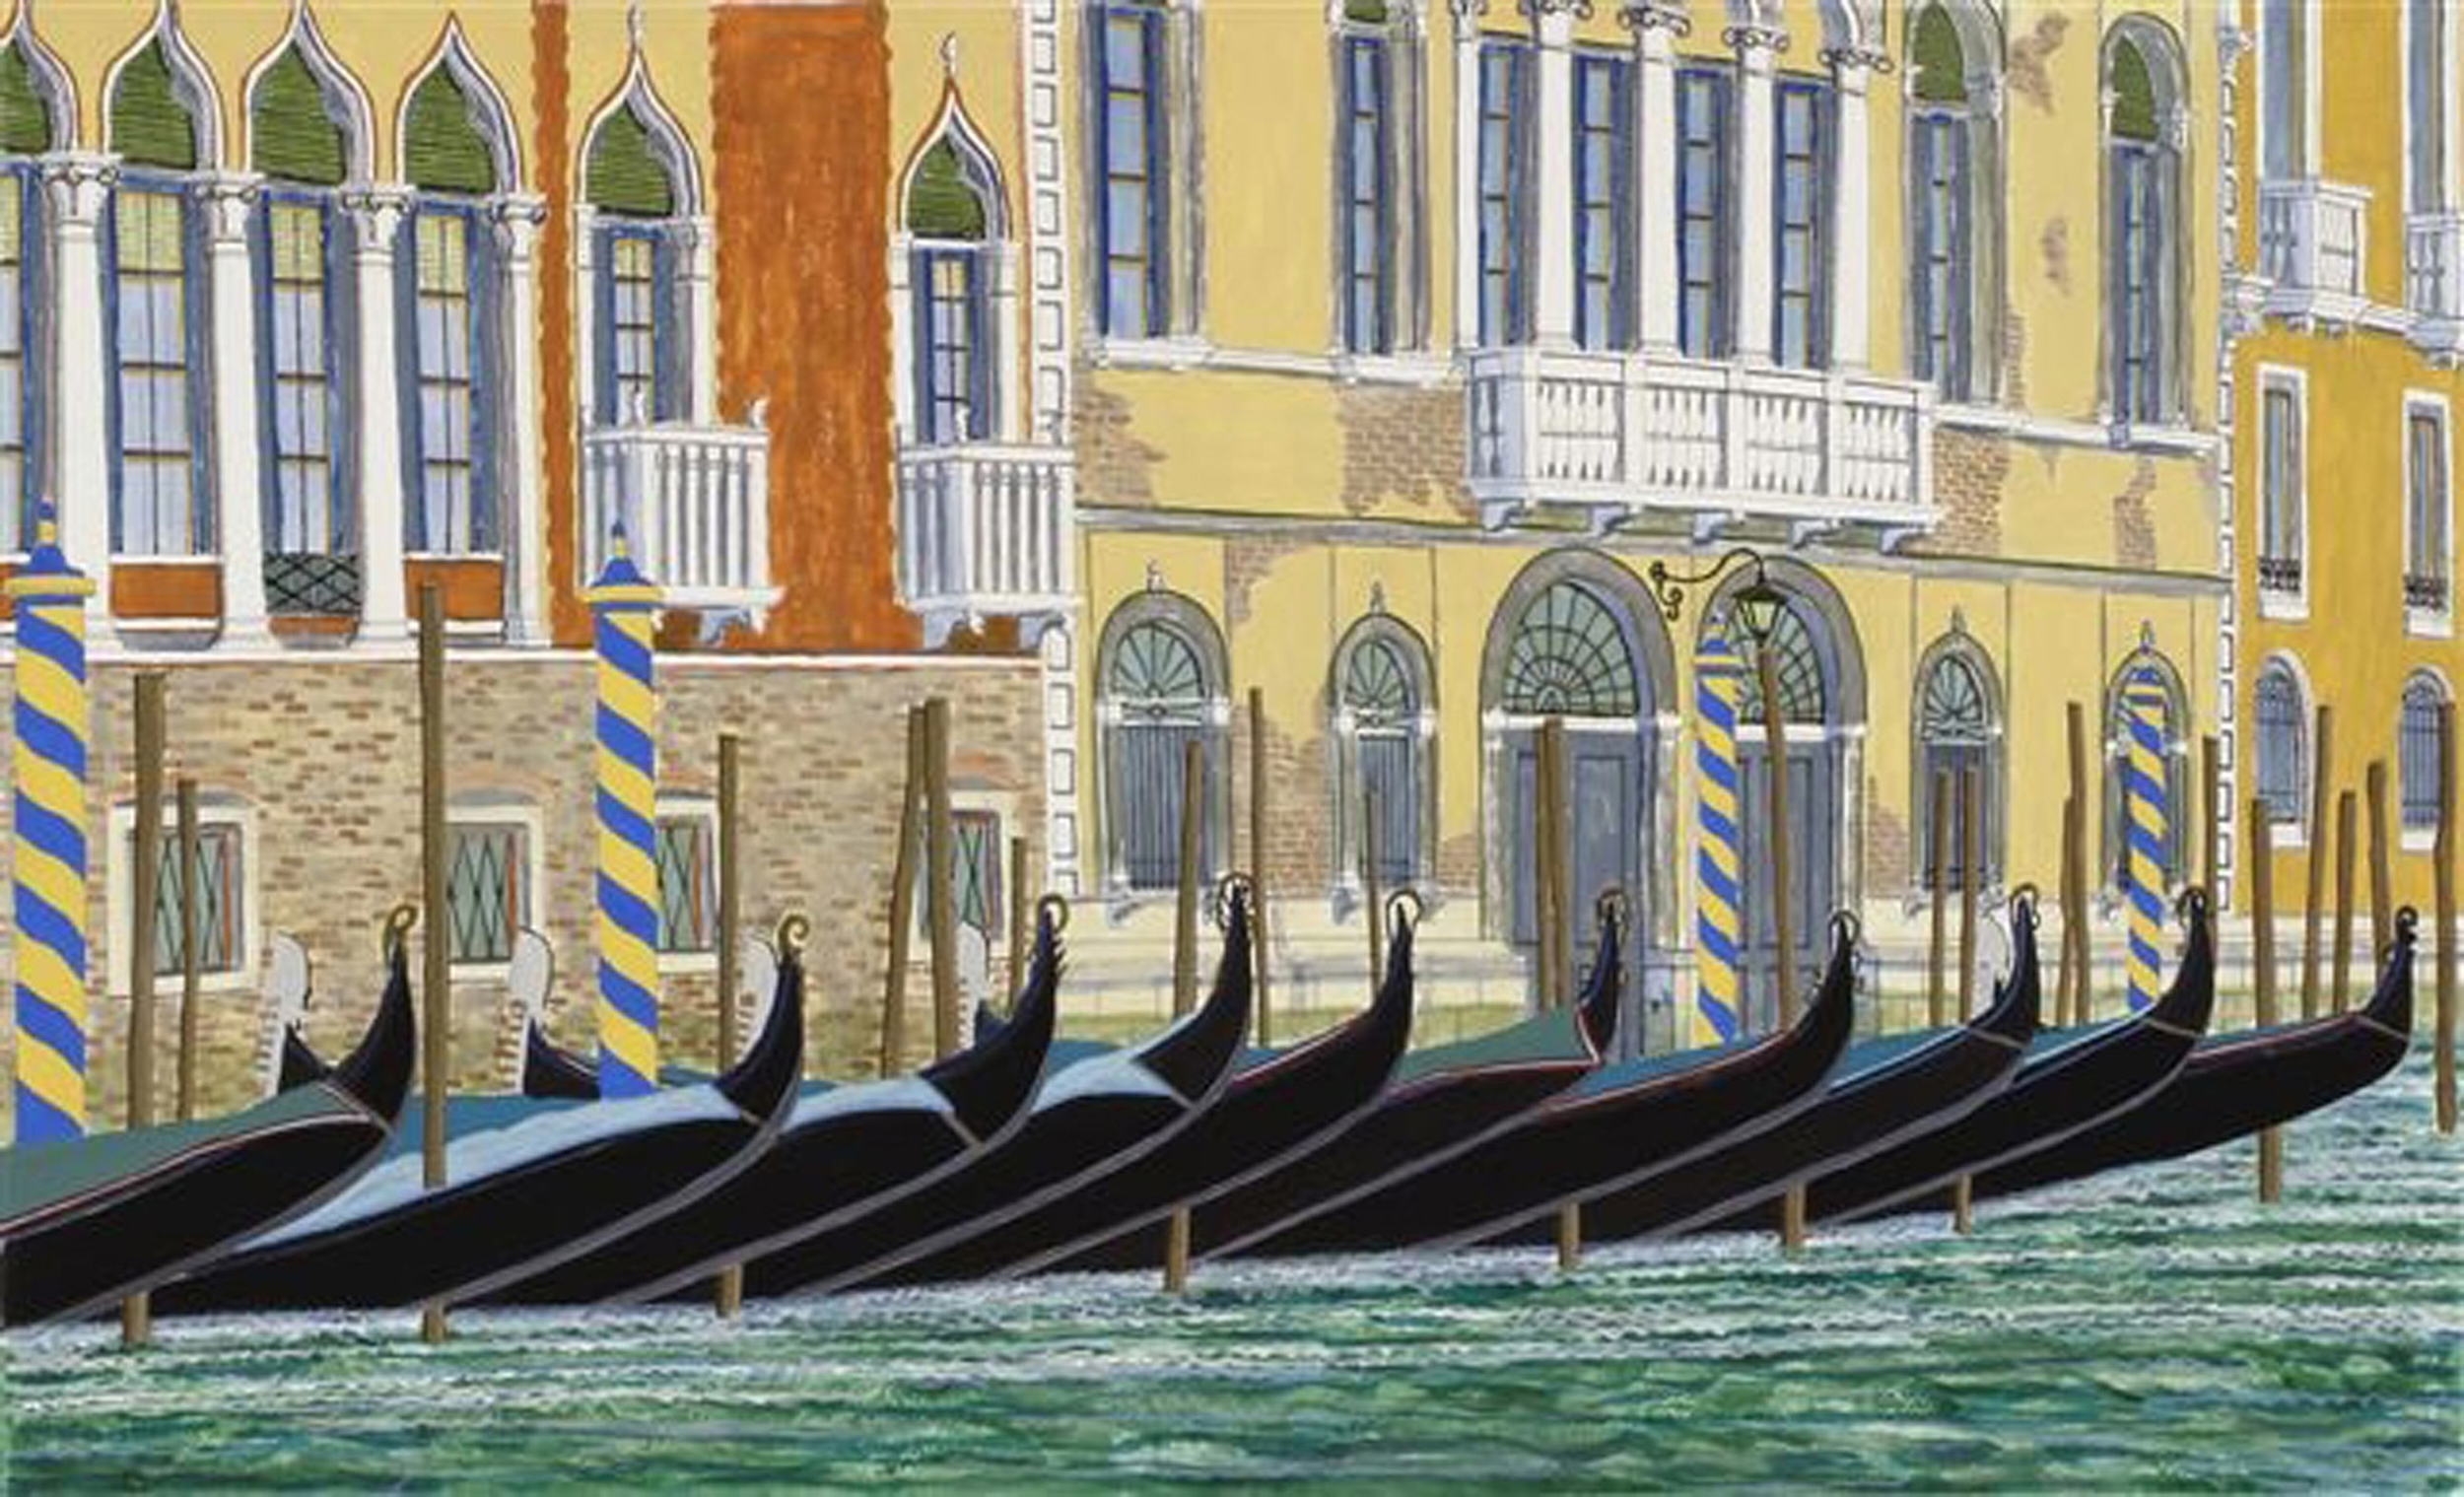 Gondolas of the Grand Canal